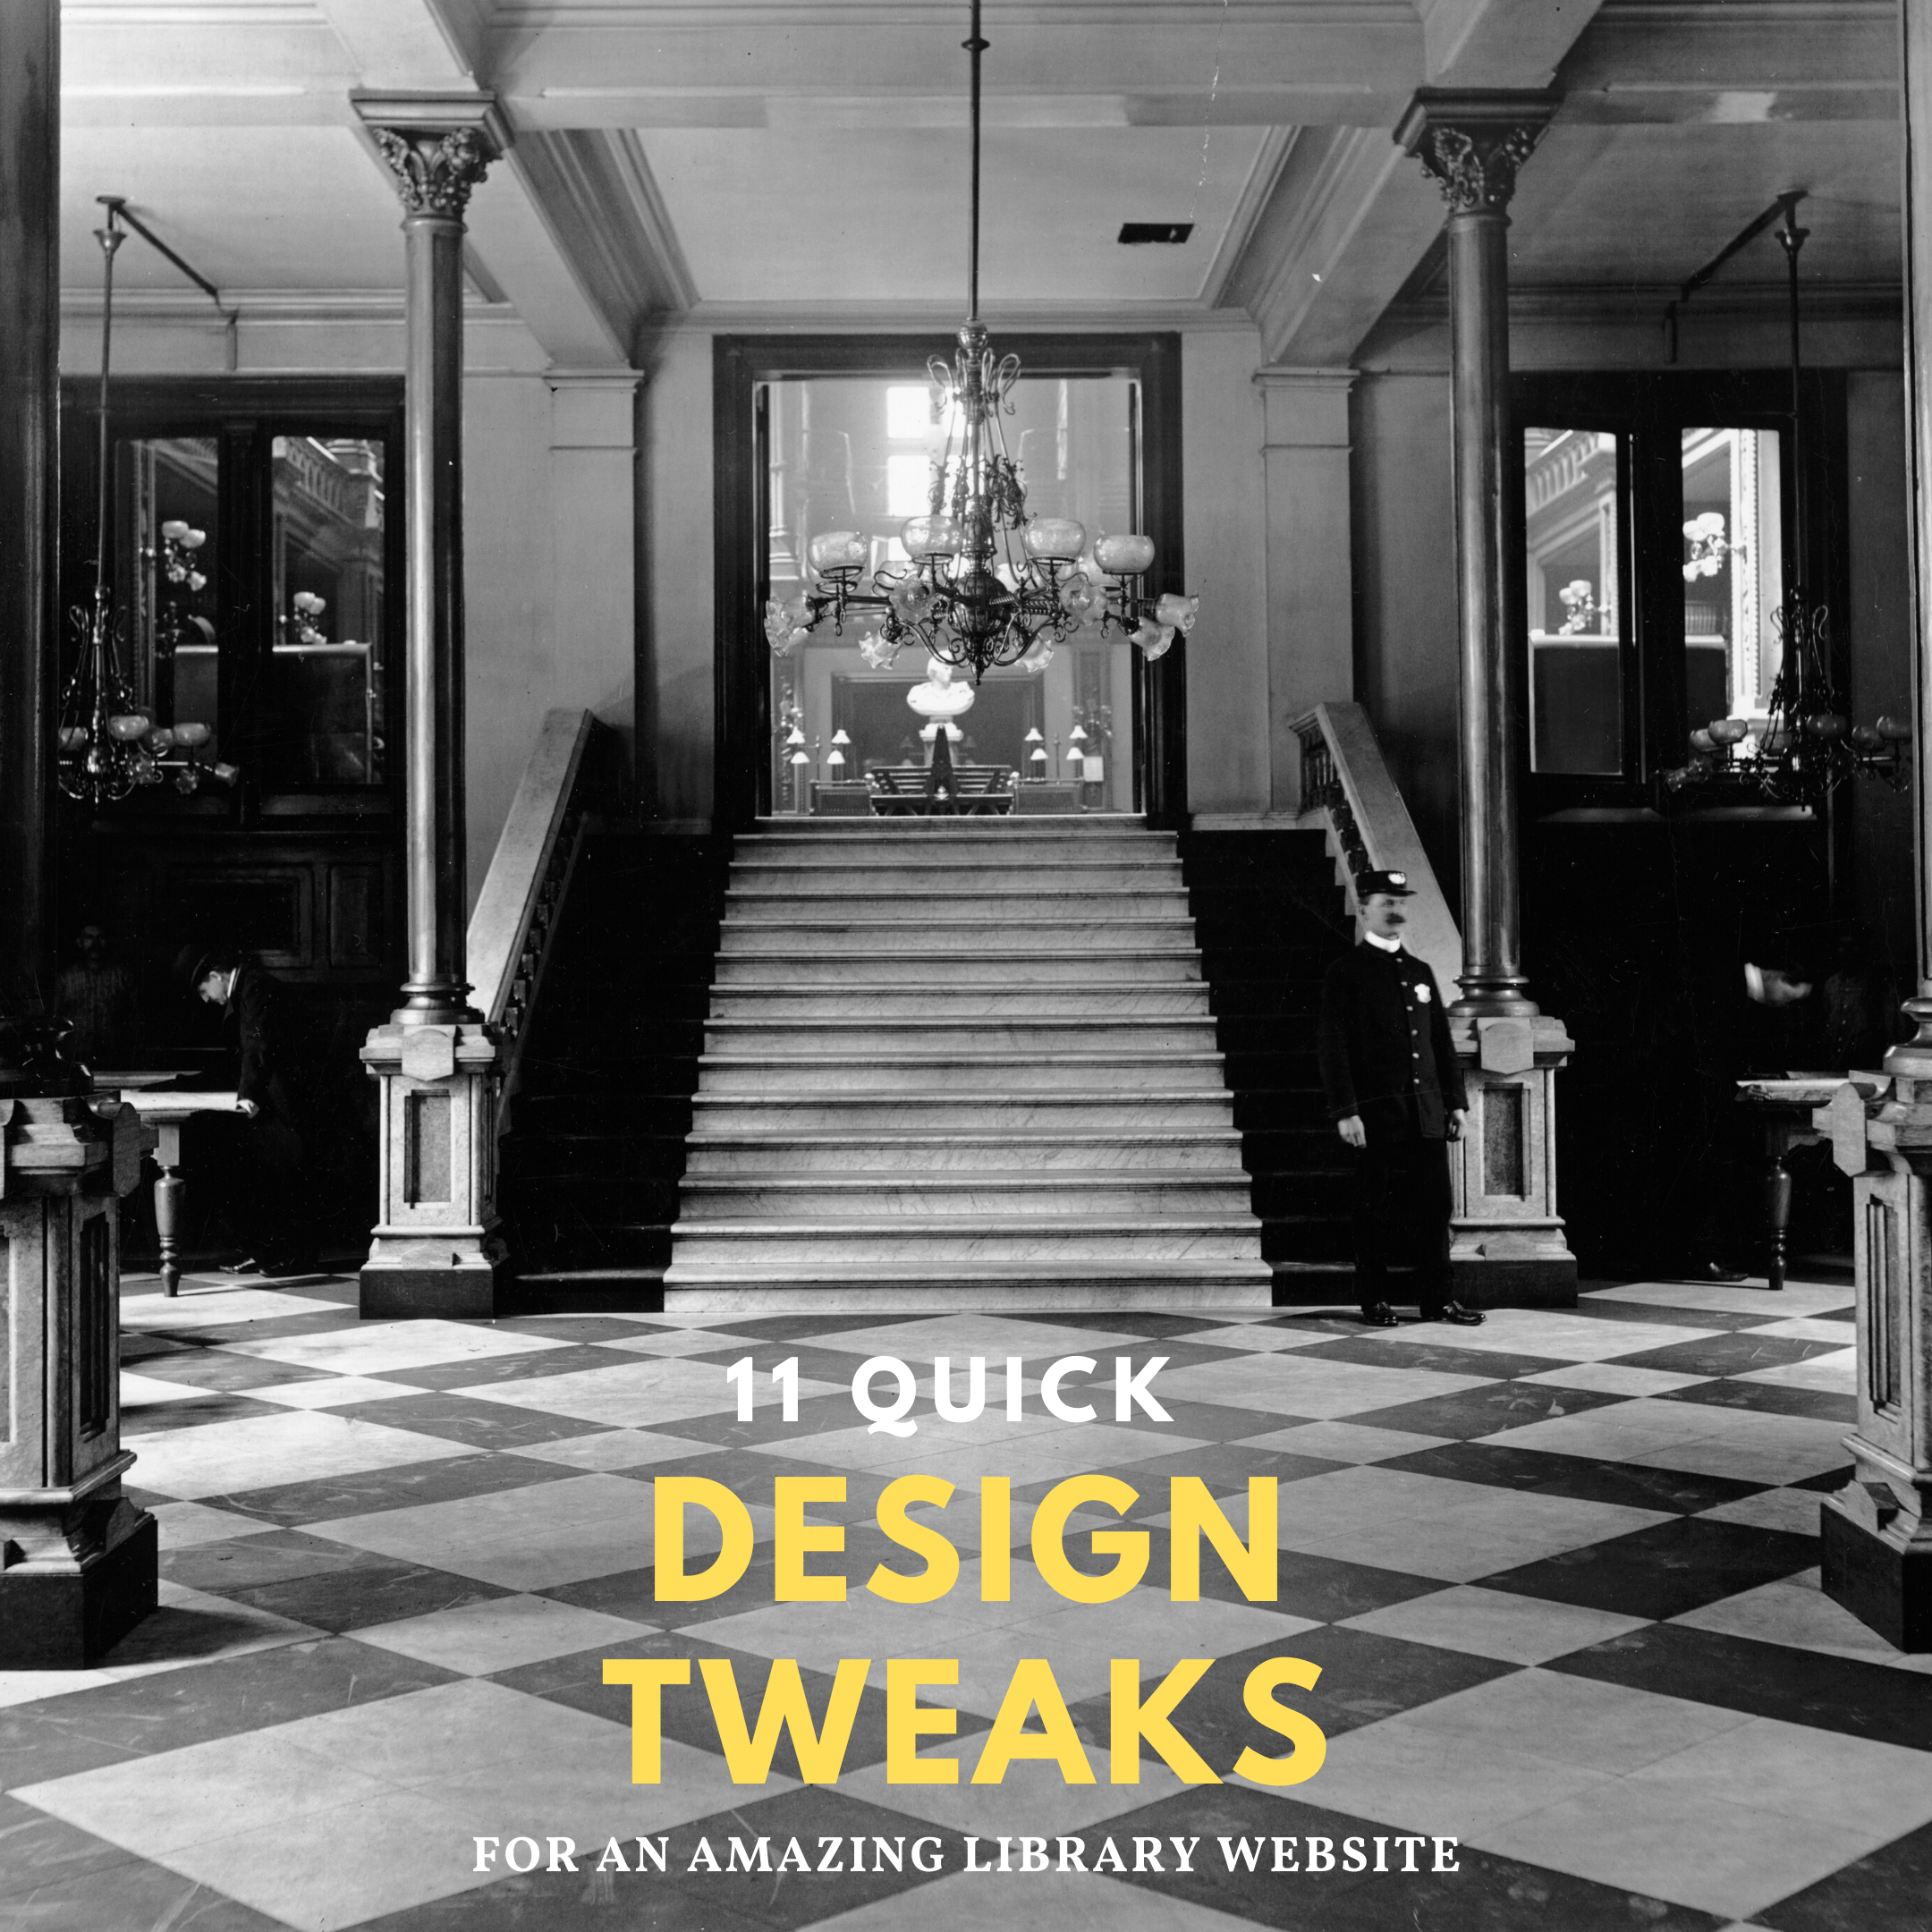 Your Website is the MOST Important Gateway to Your Library Right Now. Here Are Eleven Quick Design Tweaks to Make It Amazing.